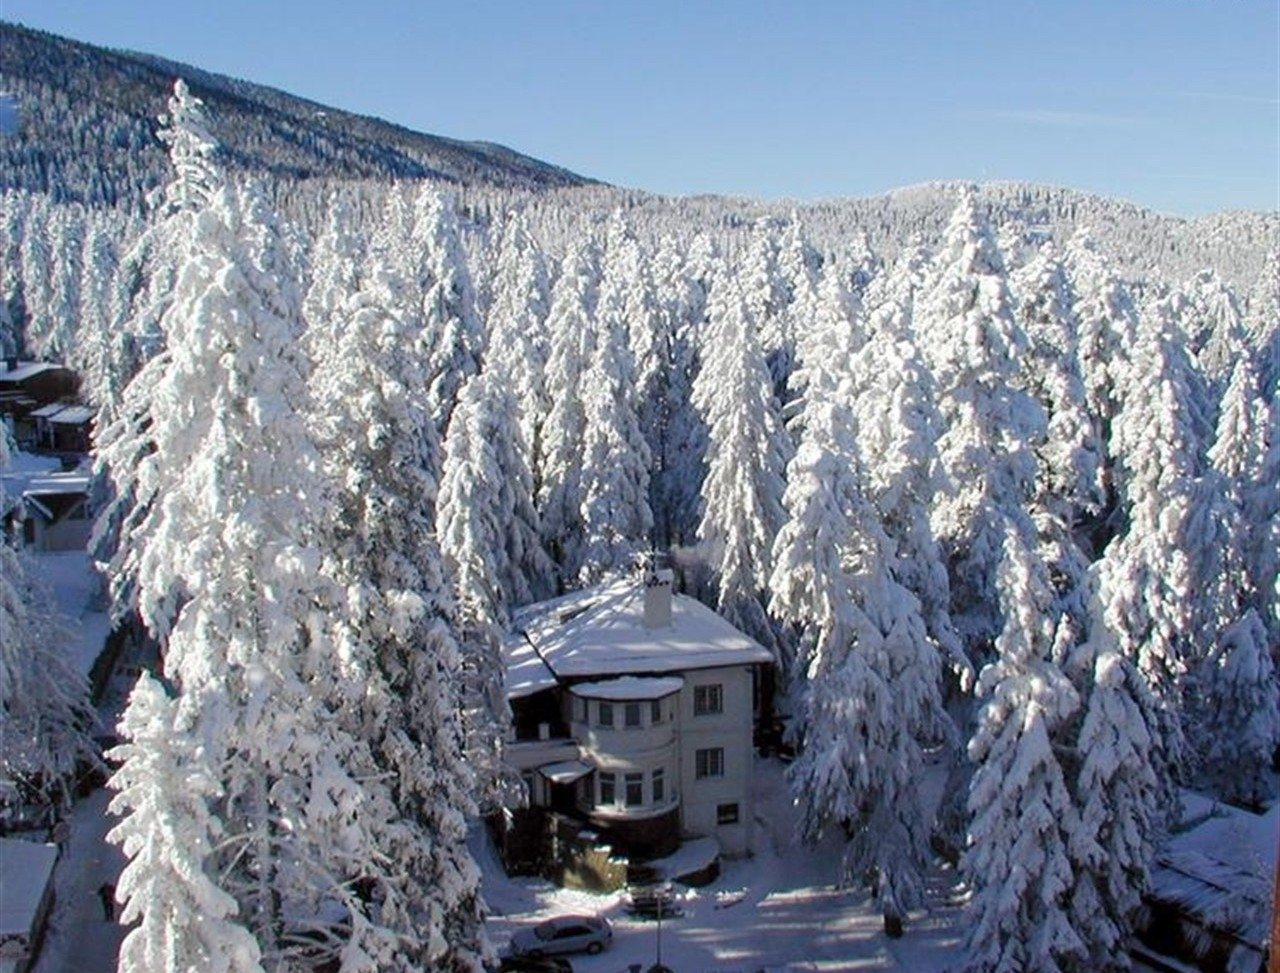 Borovets, Bulgaria winter scene with house and trees